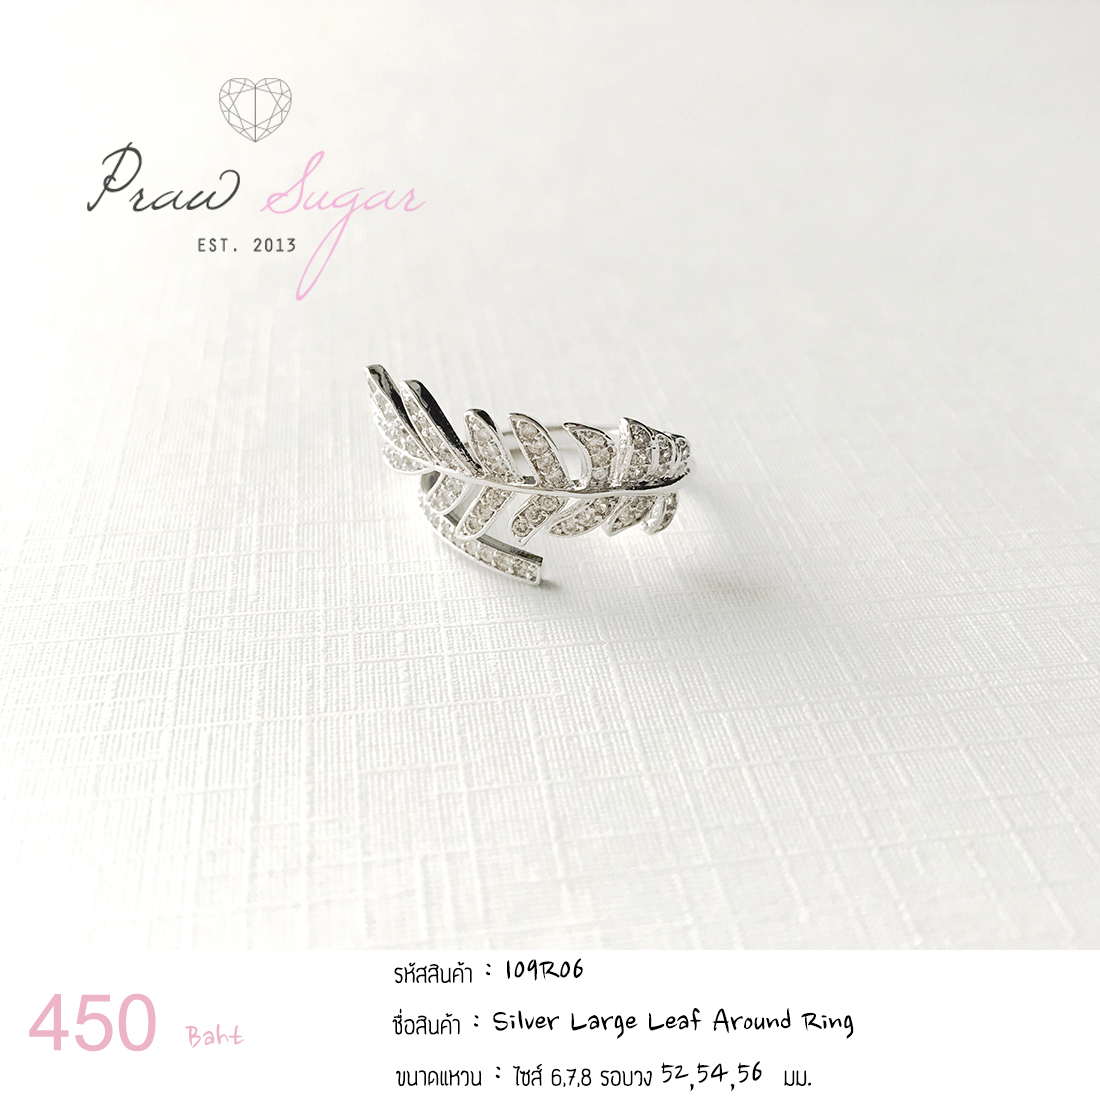 Silver Large Leaf Around Ring